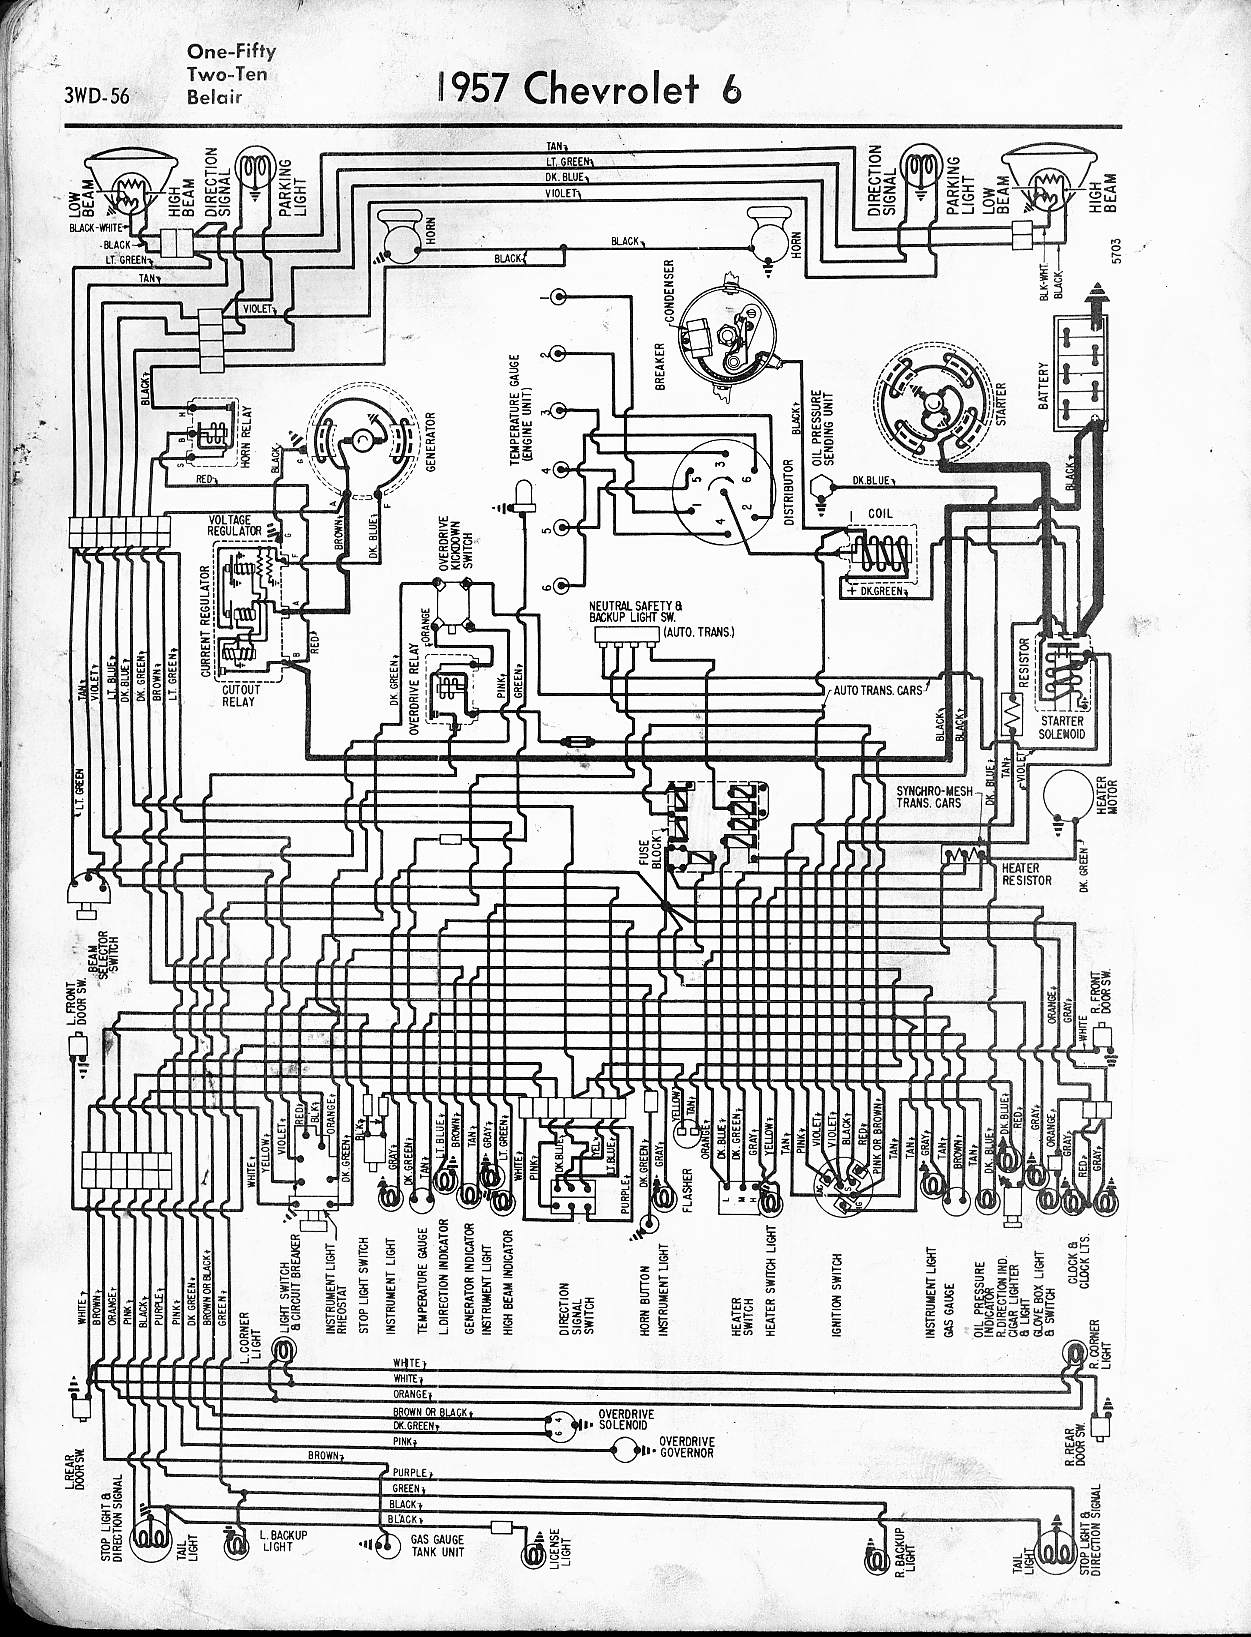 underdash wiring and heater blower help archive trifive com rh trifive com Simple Wiring Diagrams Residential Electrical Wiring Diagrams